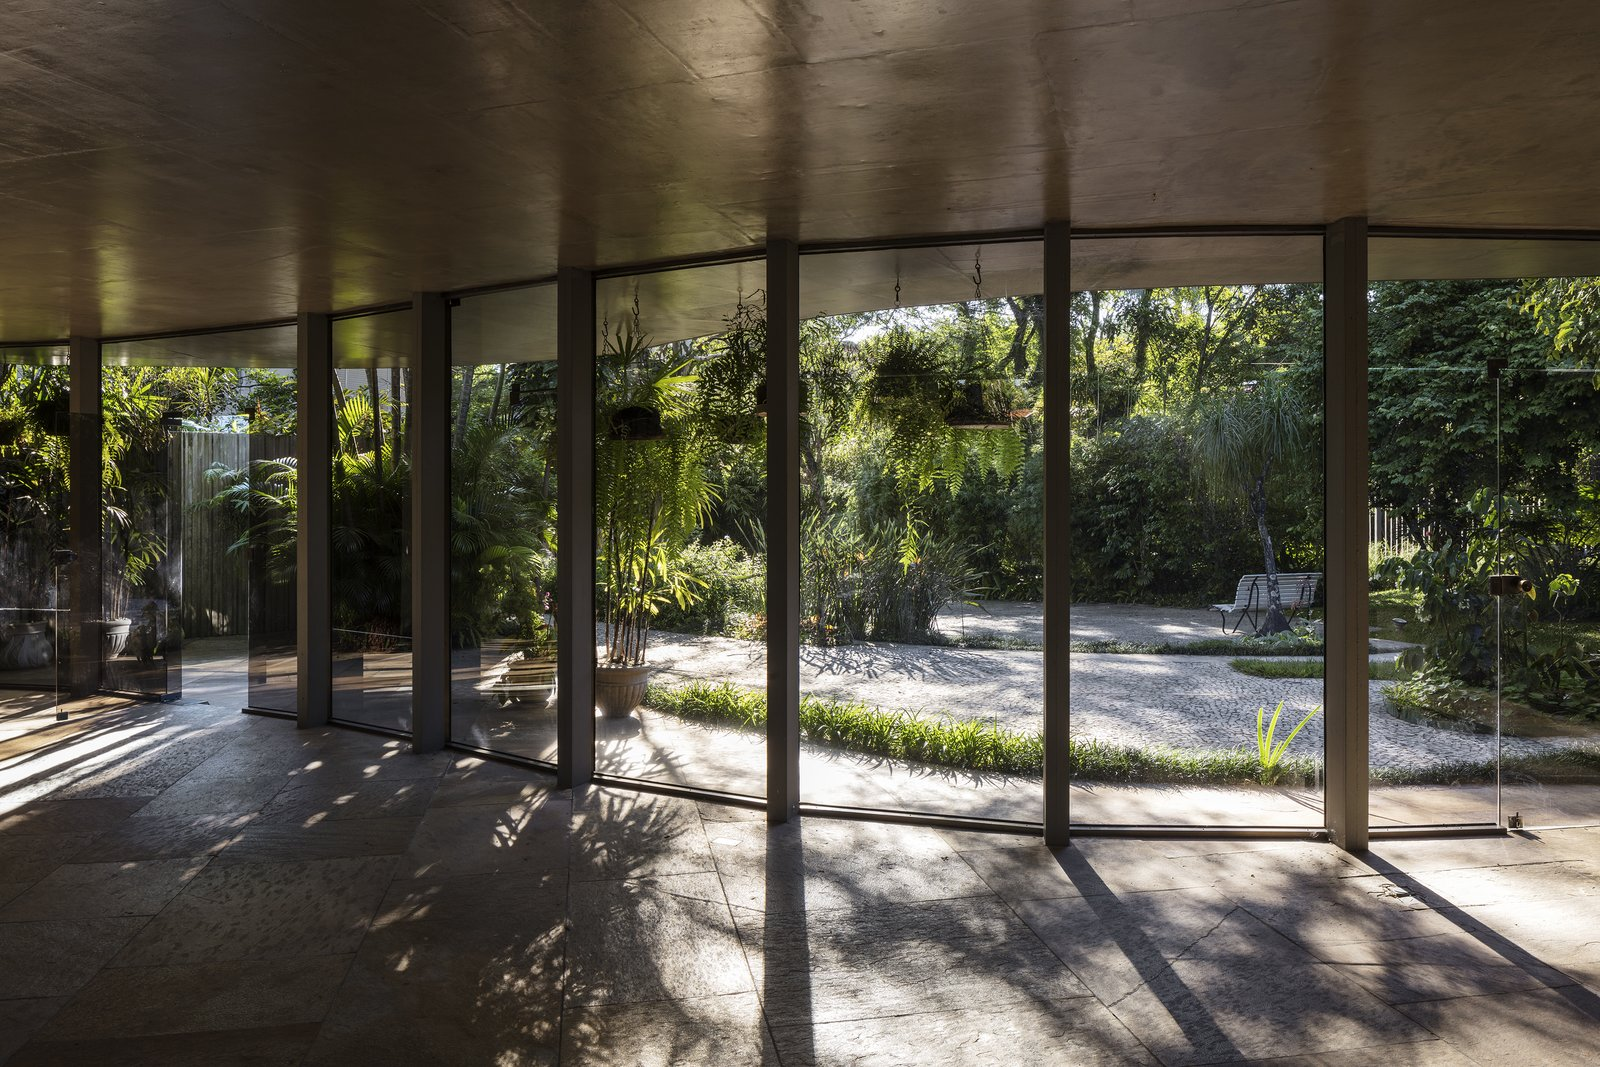 Outdoor, Gardens, Walkways, Shrubs, Trees, and Garden The main living space opens to a lush tropical garden.  Photo 1 of 6 in A Modern Concrete Retreat by Oscar Niemeyer Is Available For the First Time